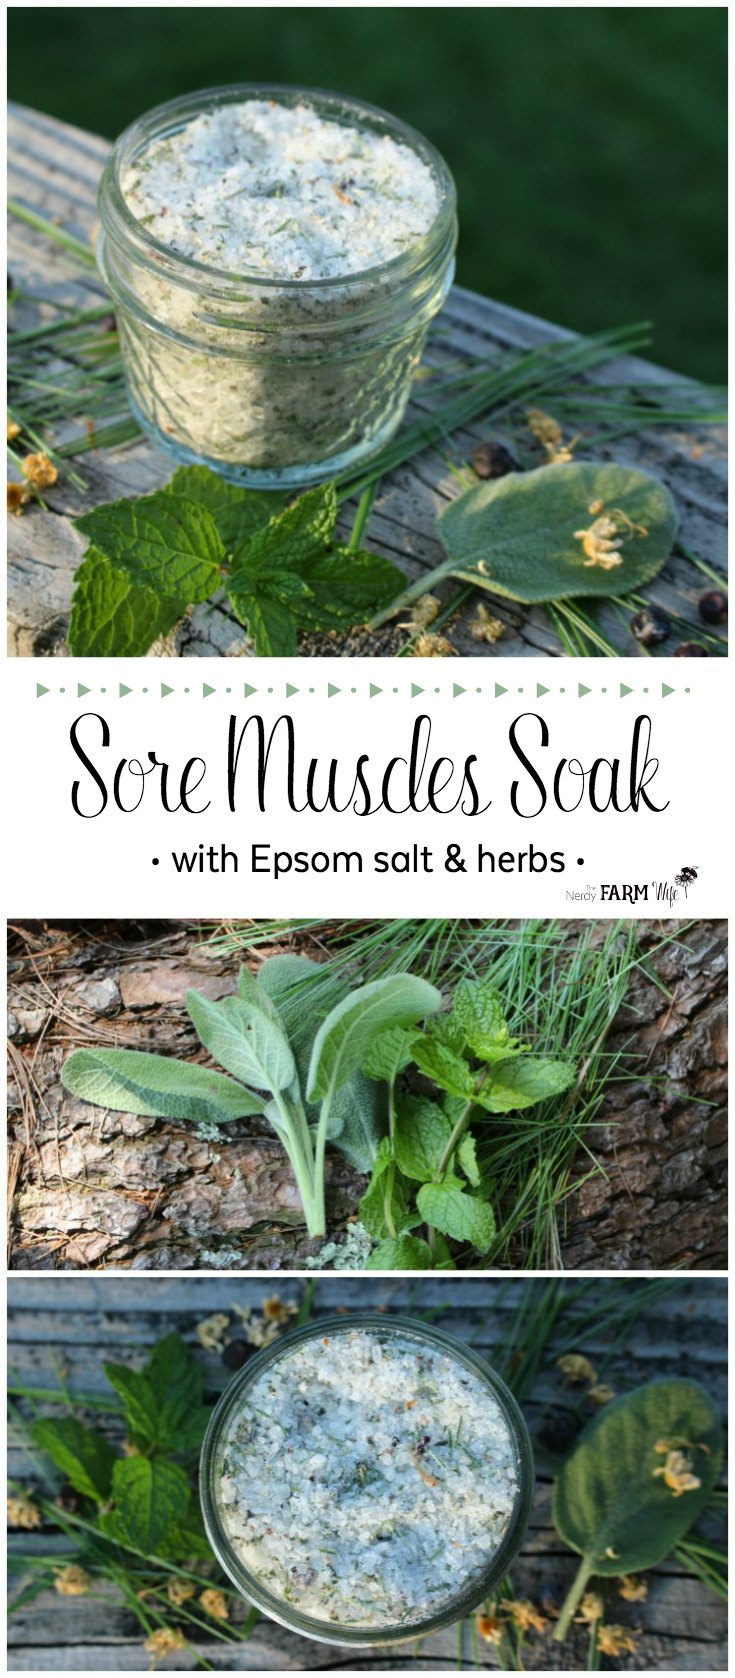 Sore Muscles Soak - made with Epsom salt and beneficial herbs